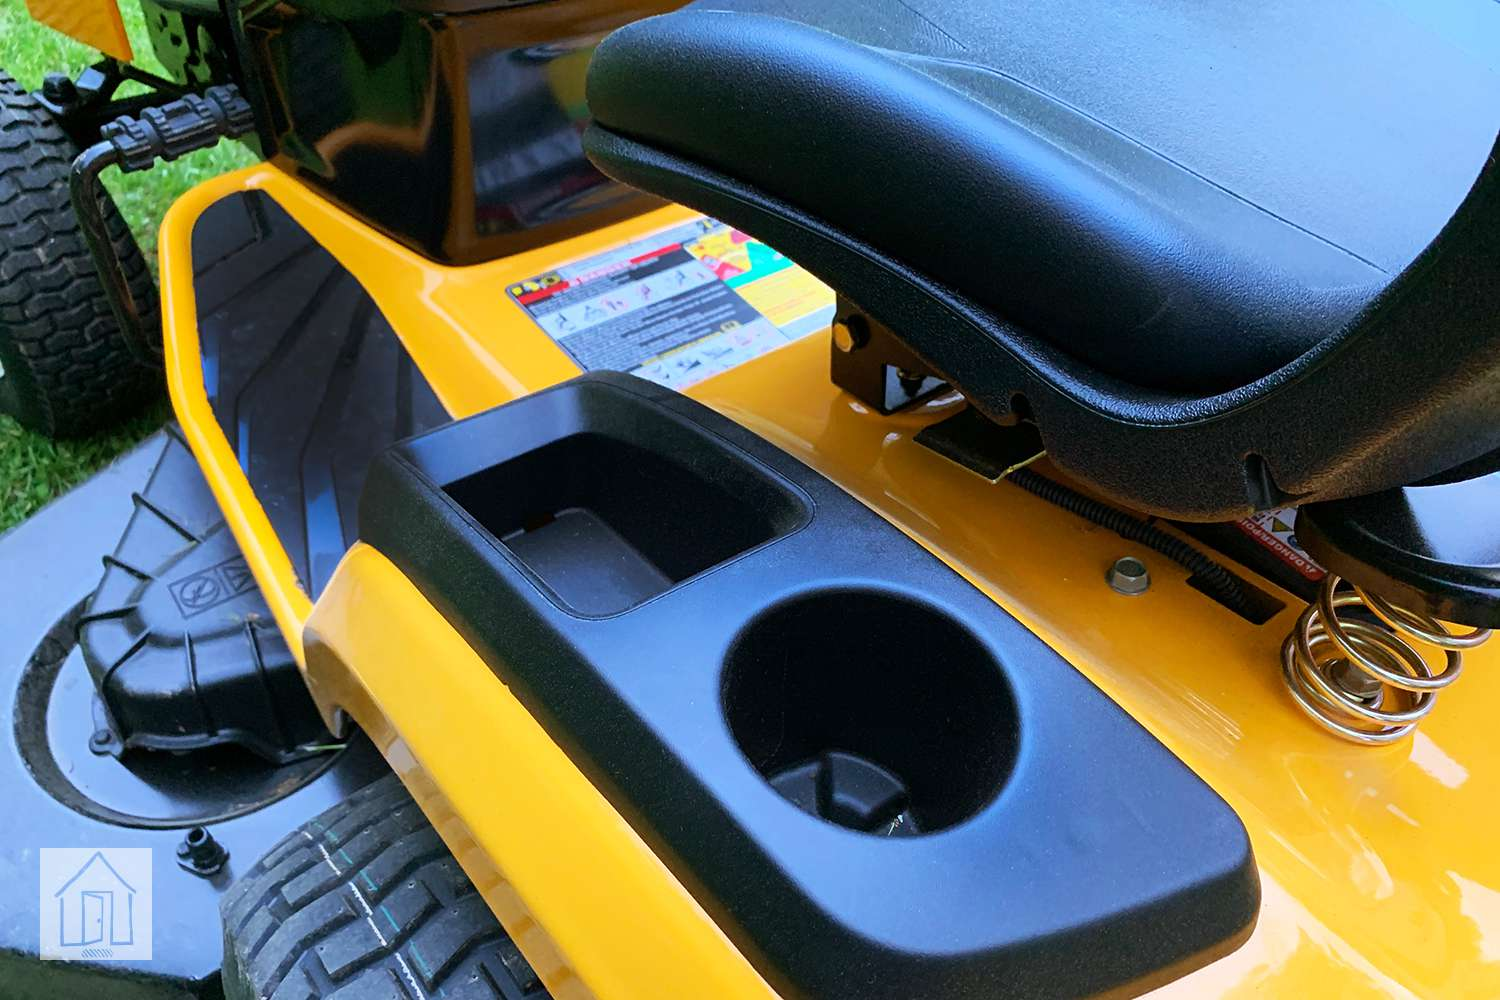 Cub Cadet Xt1 St54 Lawn Tractor Review A Fast And Agile Mower